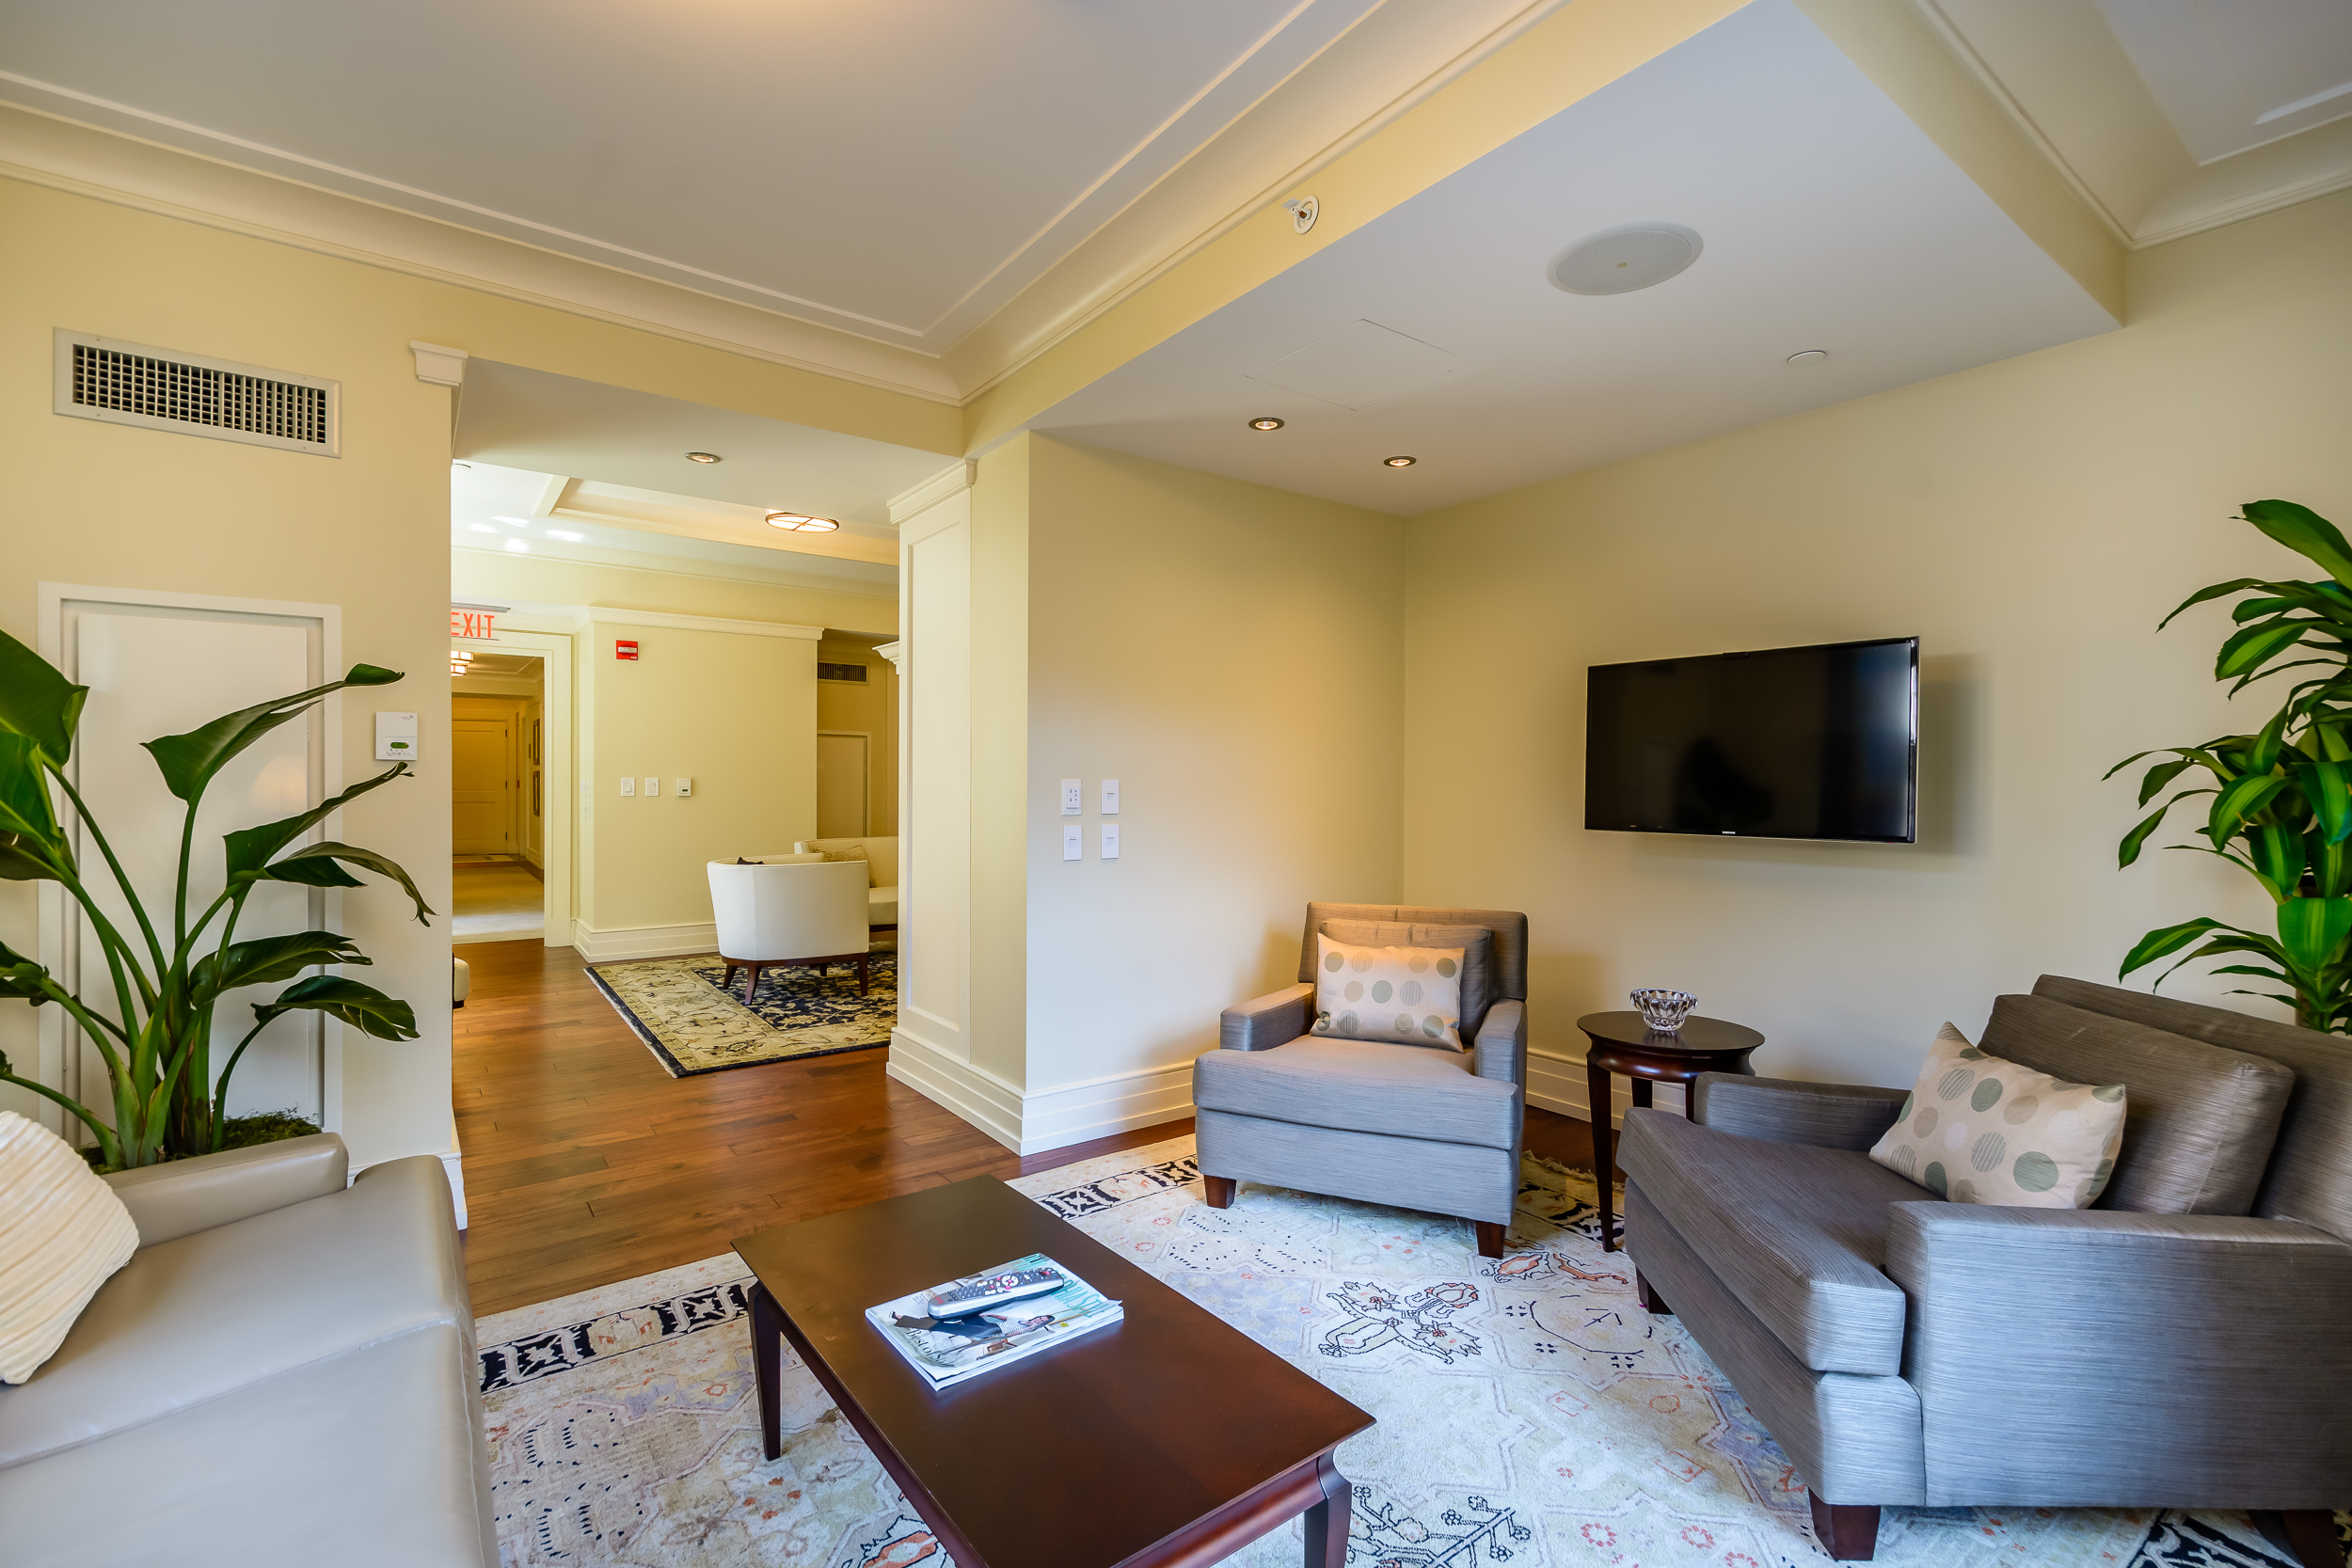 10 Rittenhouse Luxury Condo Home Philaelphia Bryant Wilde-31.jpg